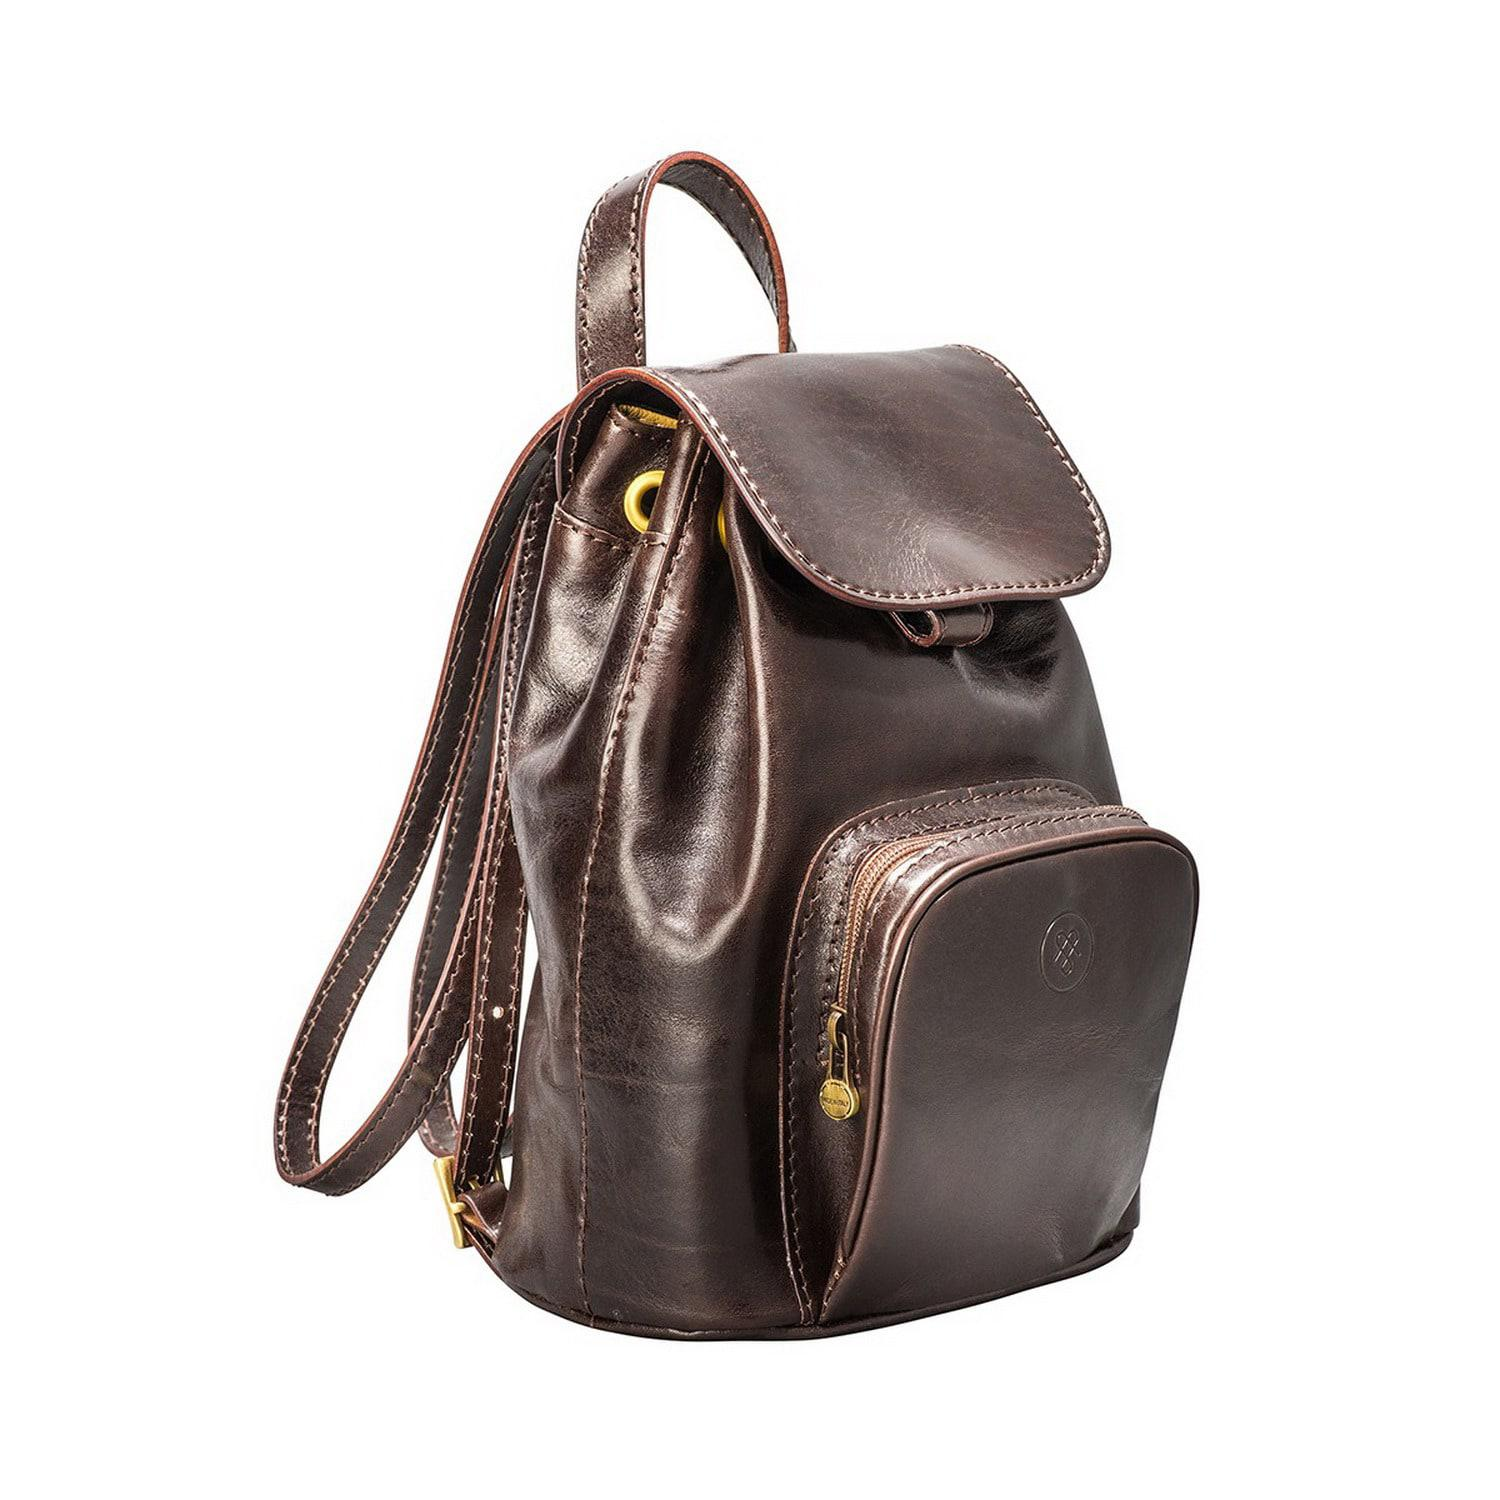 bed4e3b982f Maxwell Scott Bags Luxury Italian Leather Ladies Small Rucksack ...